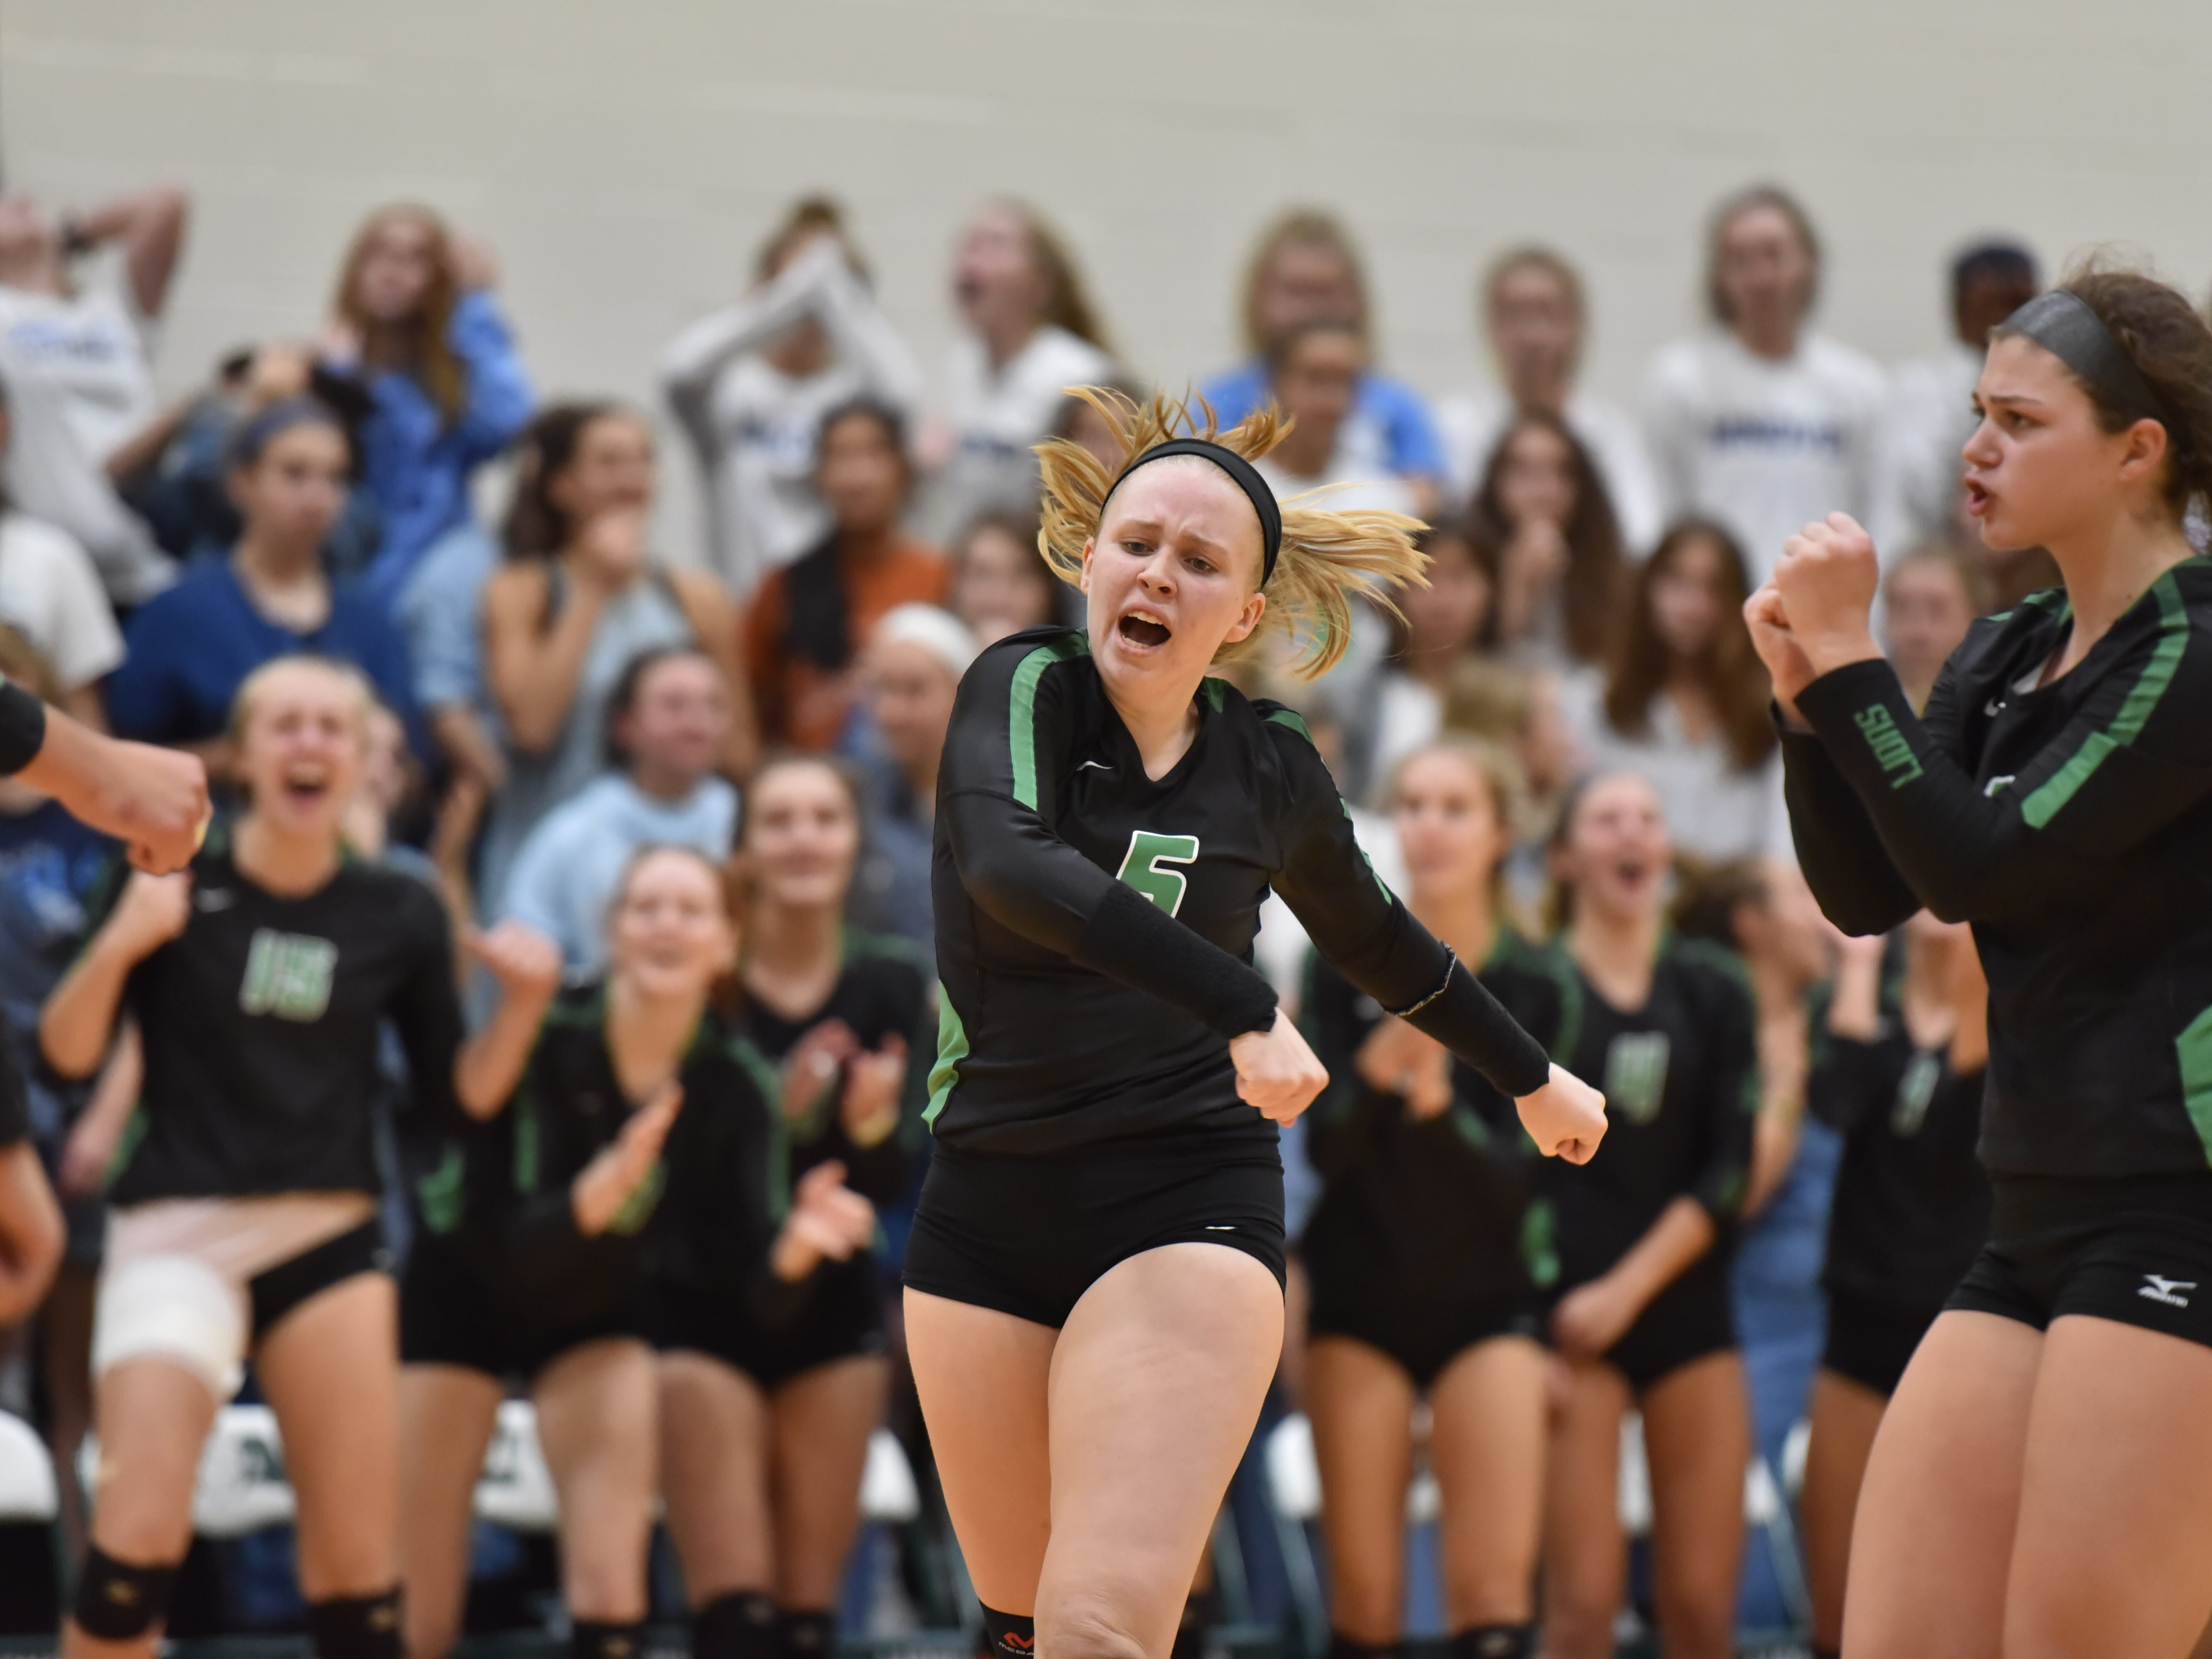 Ursuline's Katherine Meyer celebrates late in the fifth set against Mount Notre Dame Tuesday, Sept. 11, 2018 at Ursuline Academy